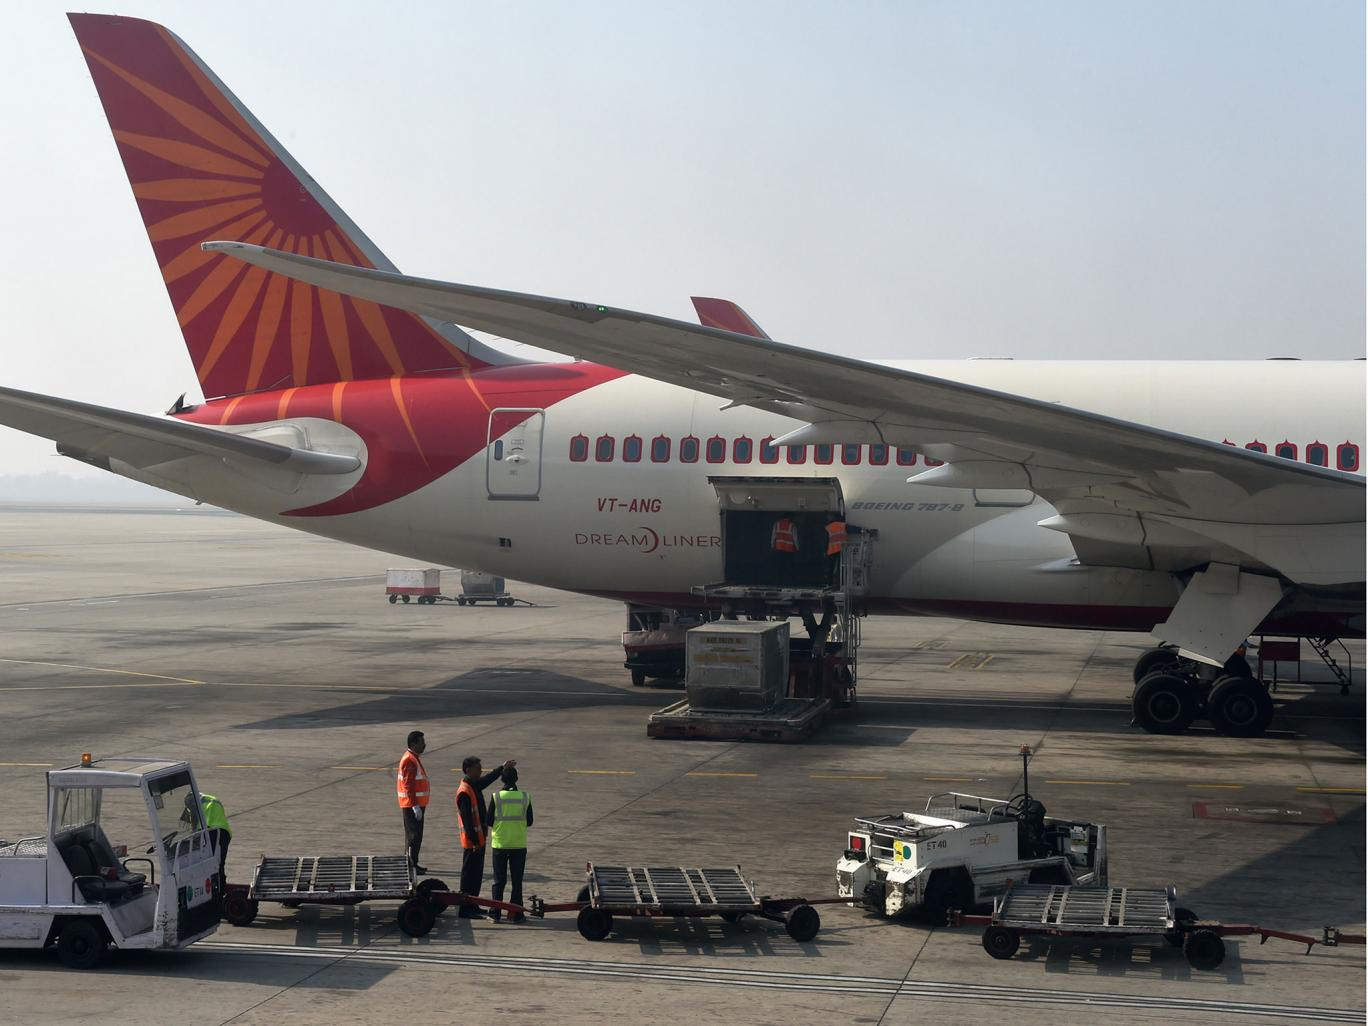 air india's role and its fast President's daughter gets ground role at air india due to security reasons swati, who doesn't use a surname, was a cabin crew on air india's long-haul boeing 787 and boeing 777 flights, but for nearly a month now she has been deputed with air india's integration department at the airline's headquarters here, the official said.